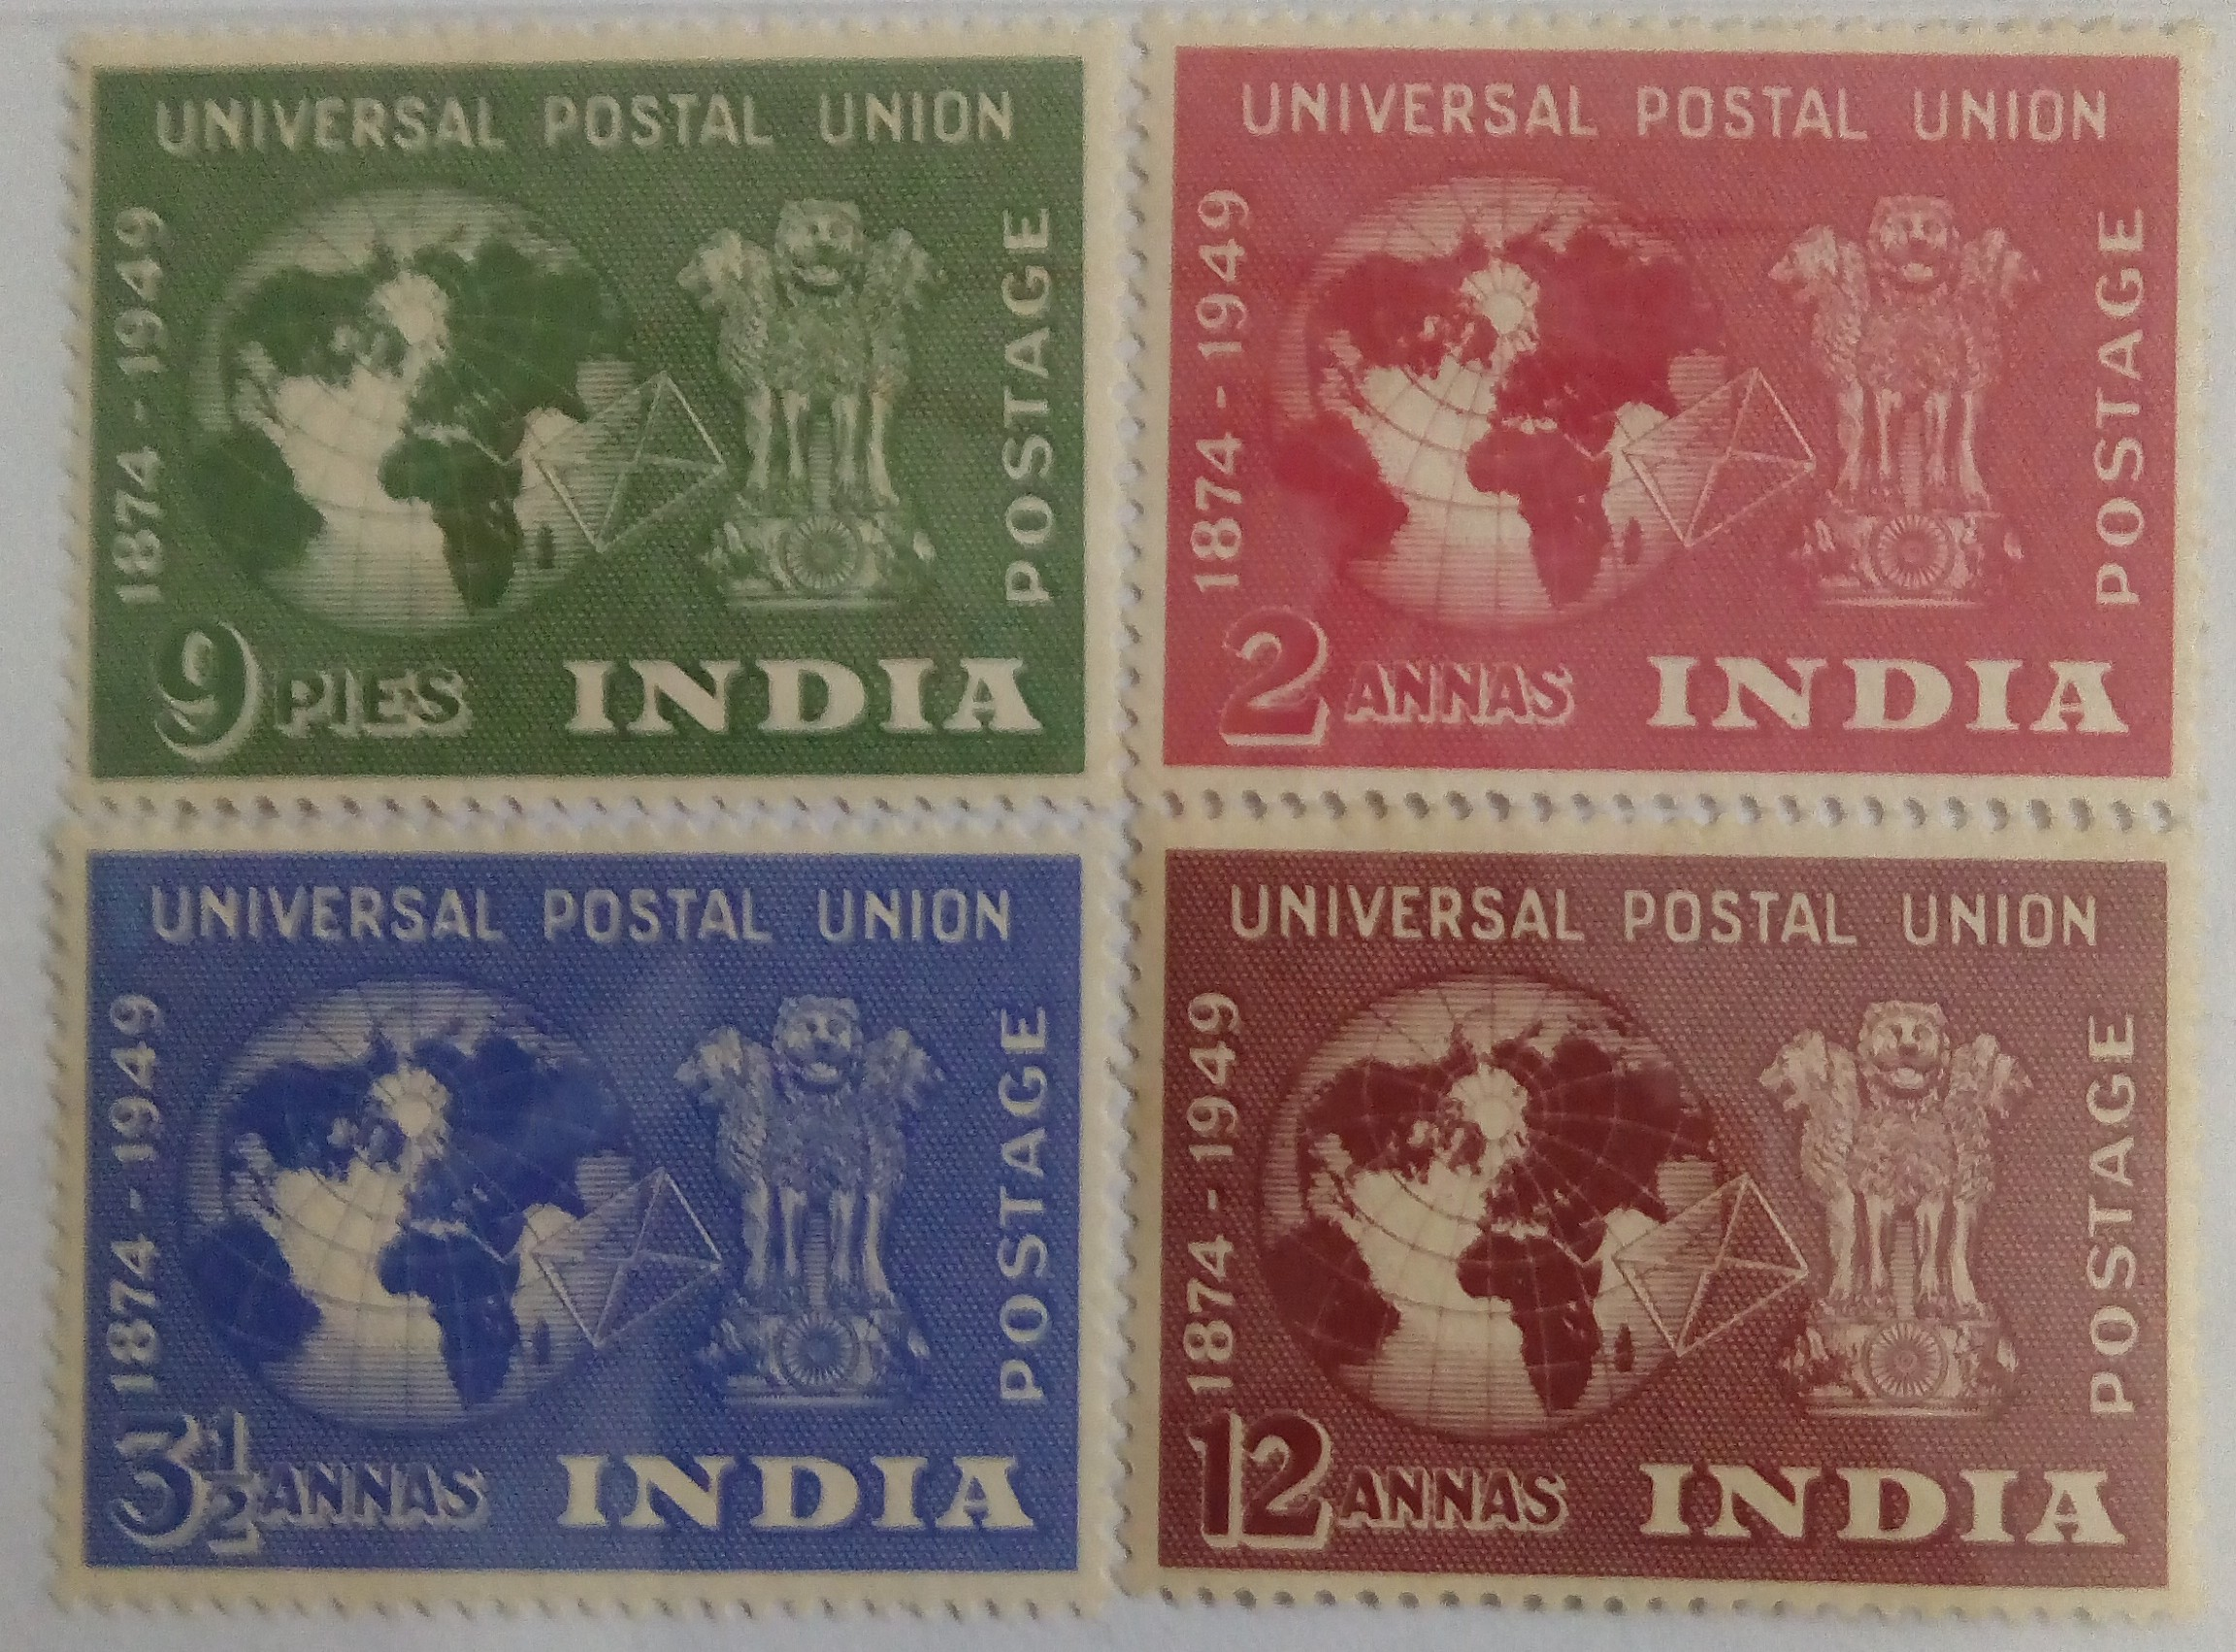 JOURNEY OF INDIA'S PHILATELY